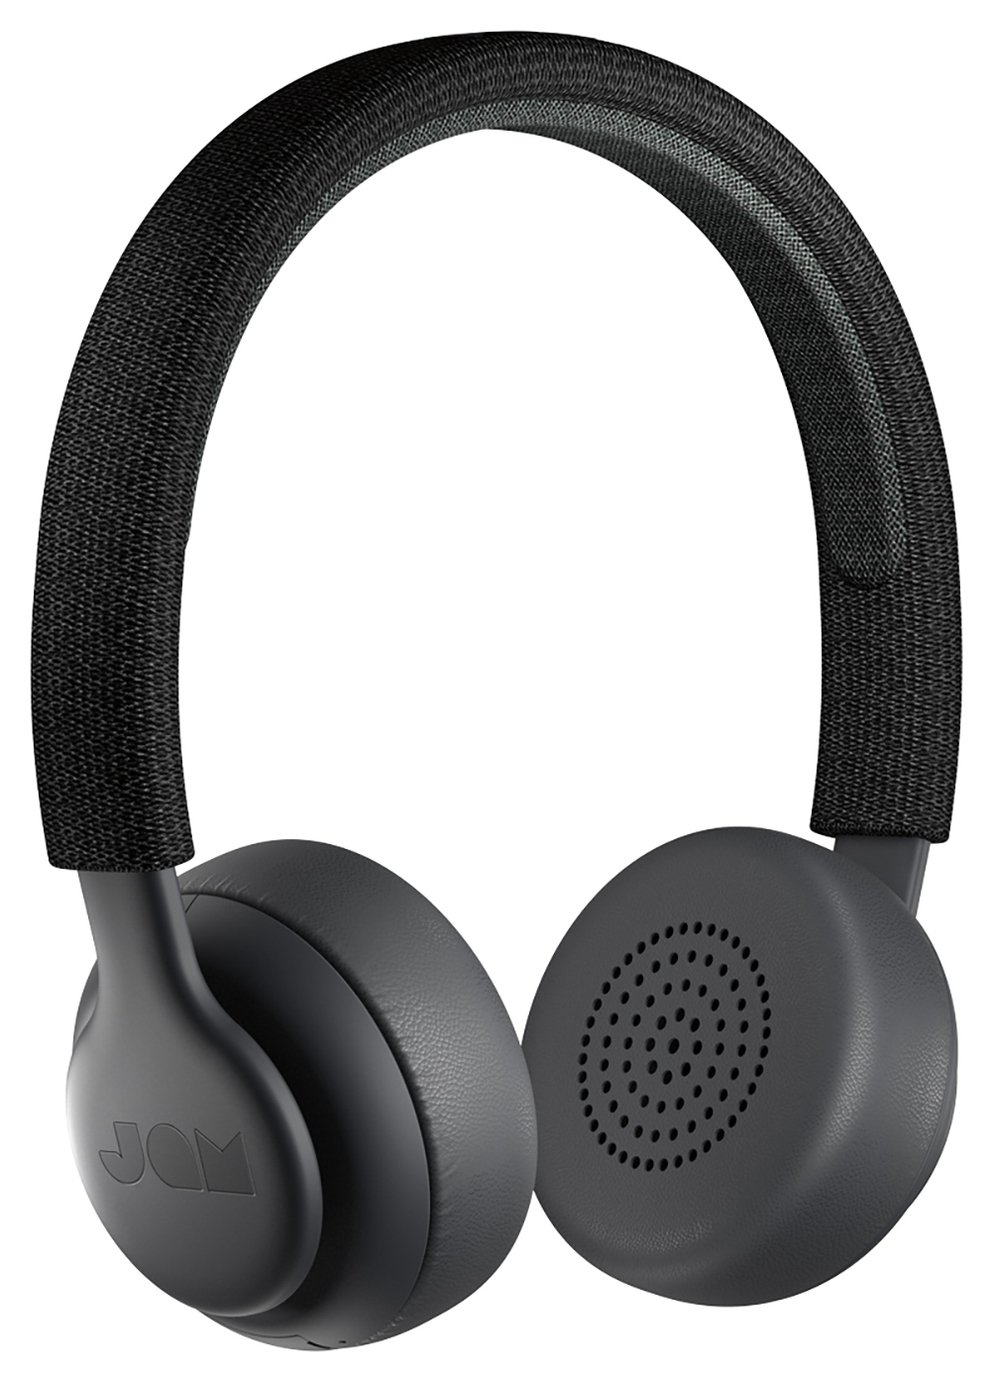 JAM Been There Over-Ear Wireless Headphones - Black